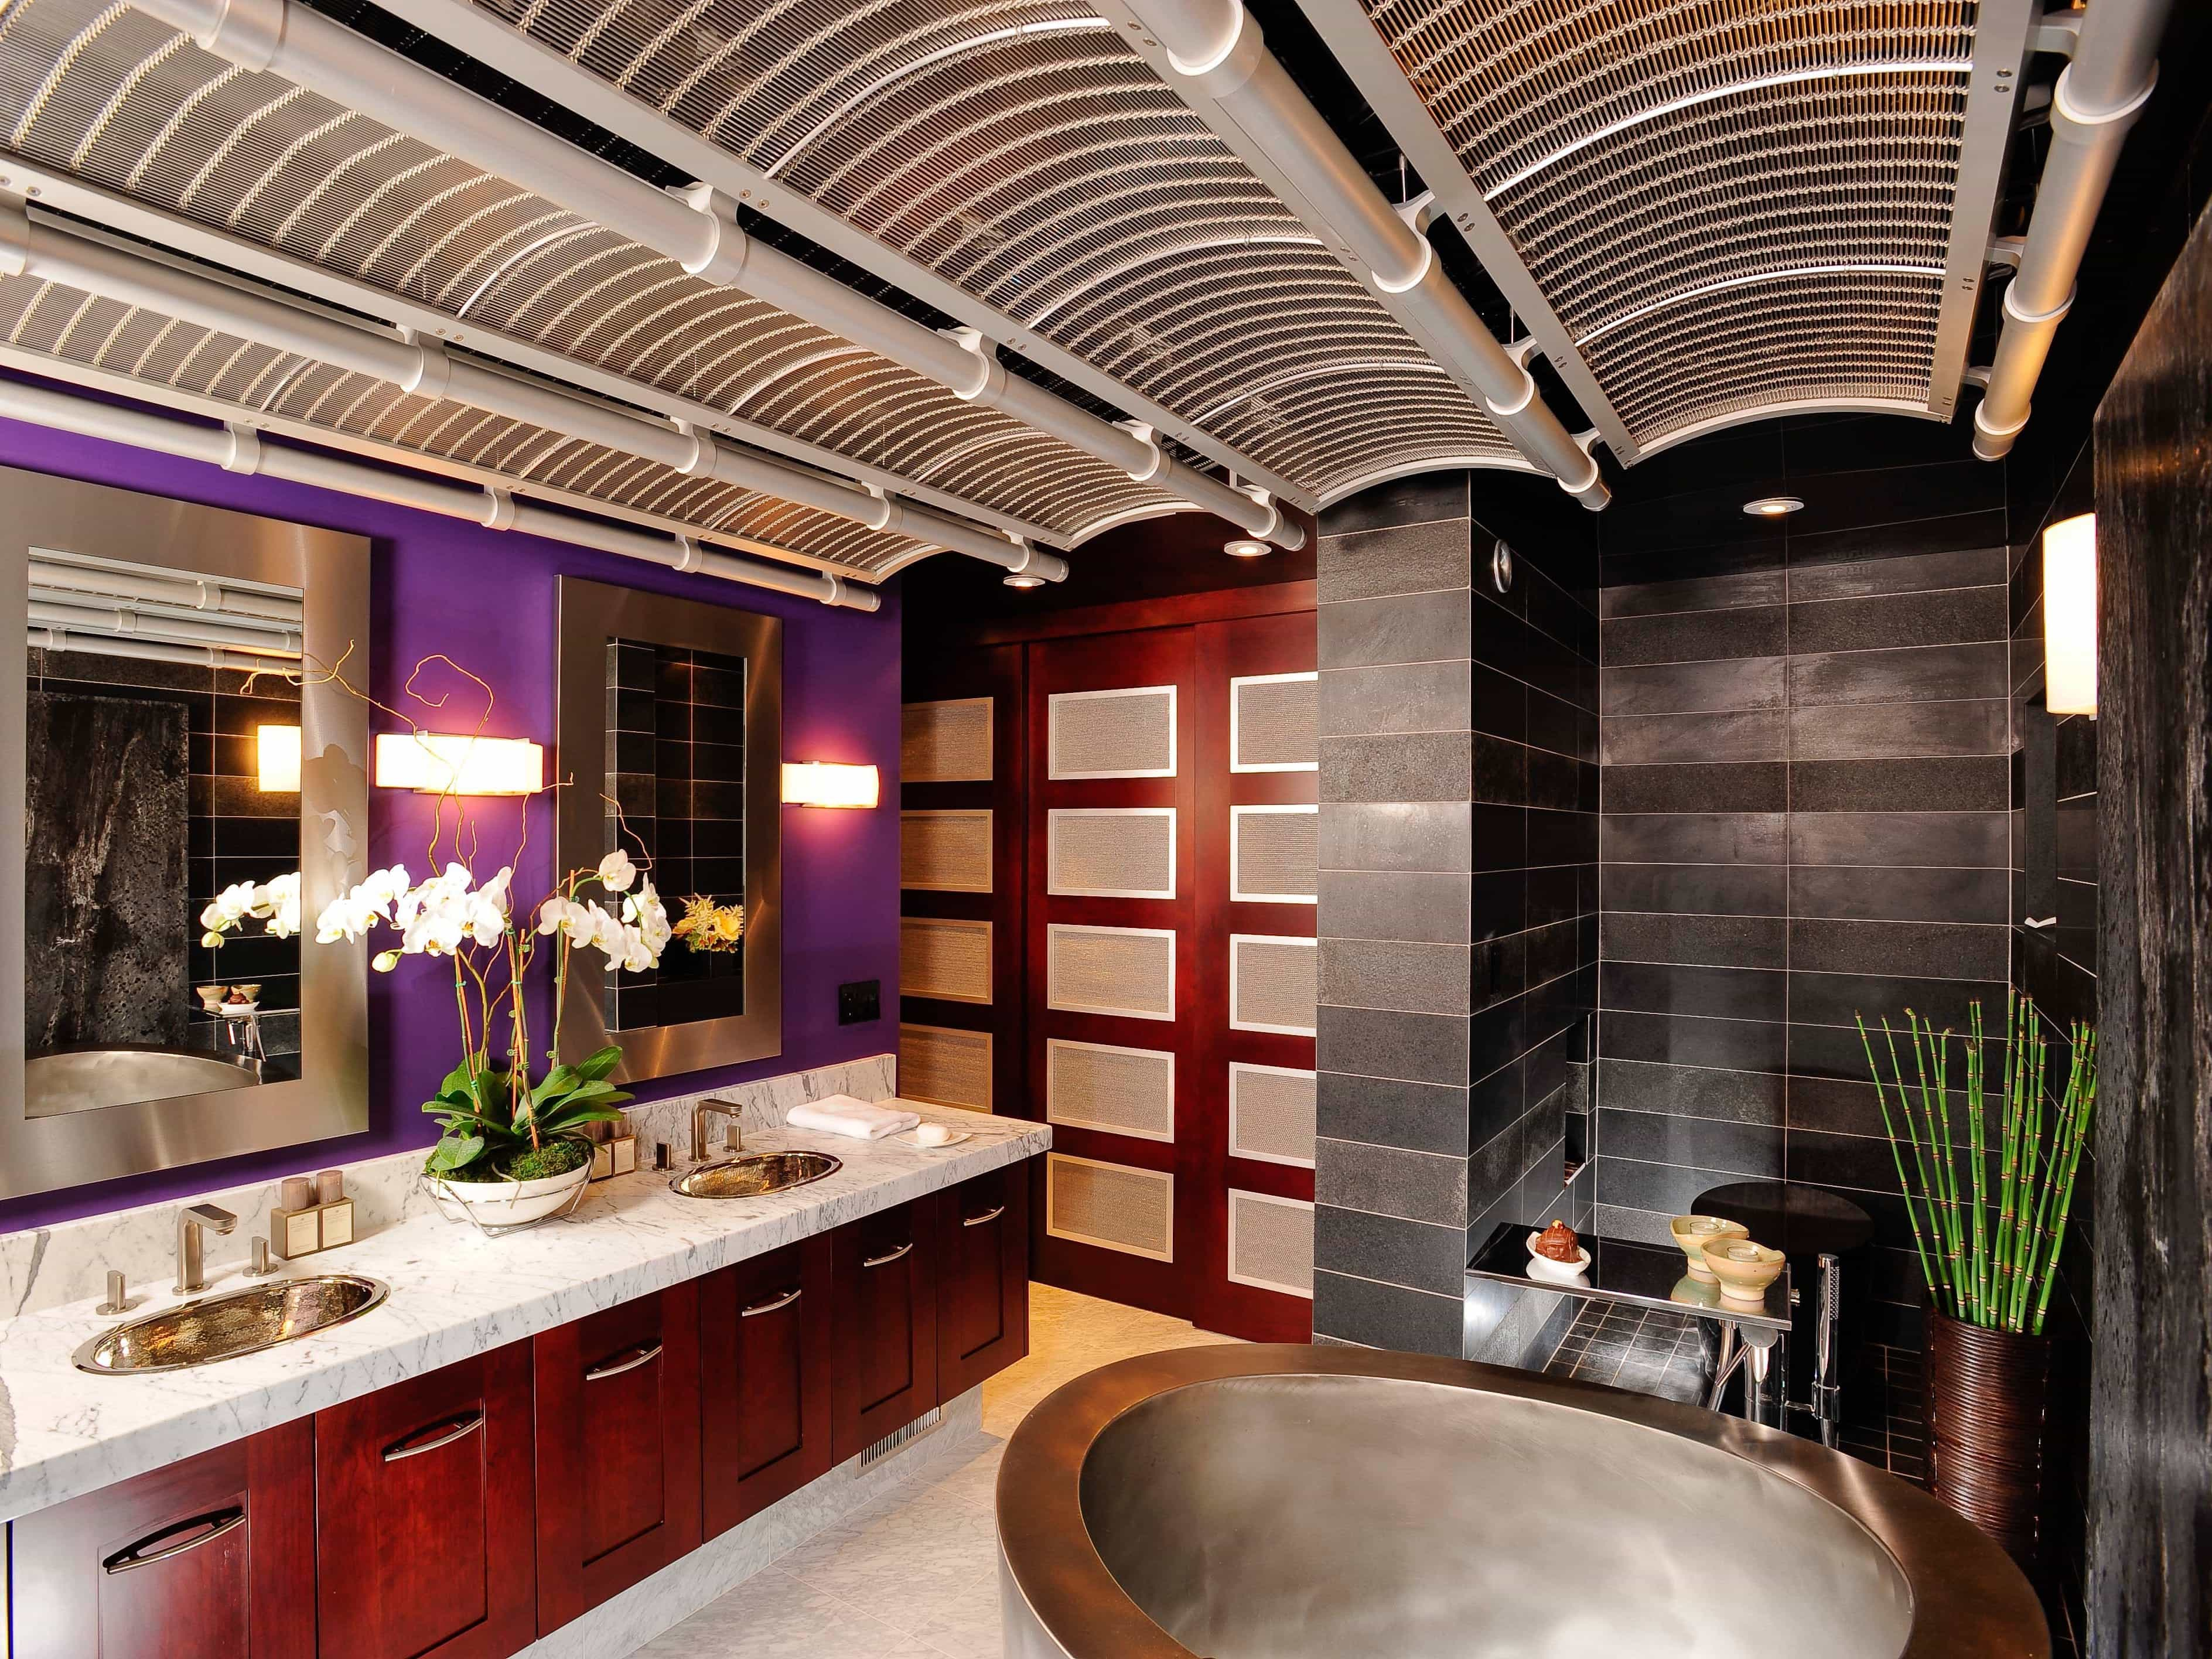 Asian Inspired Master Bathroom With Purple Accent Wall (Image 5 of 32)